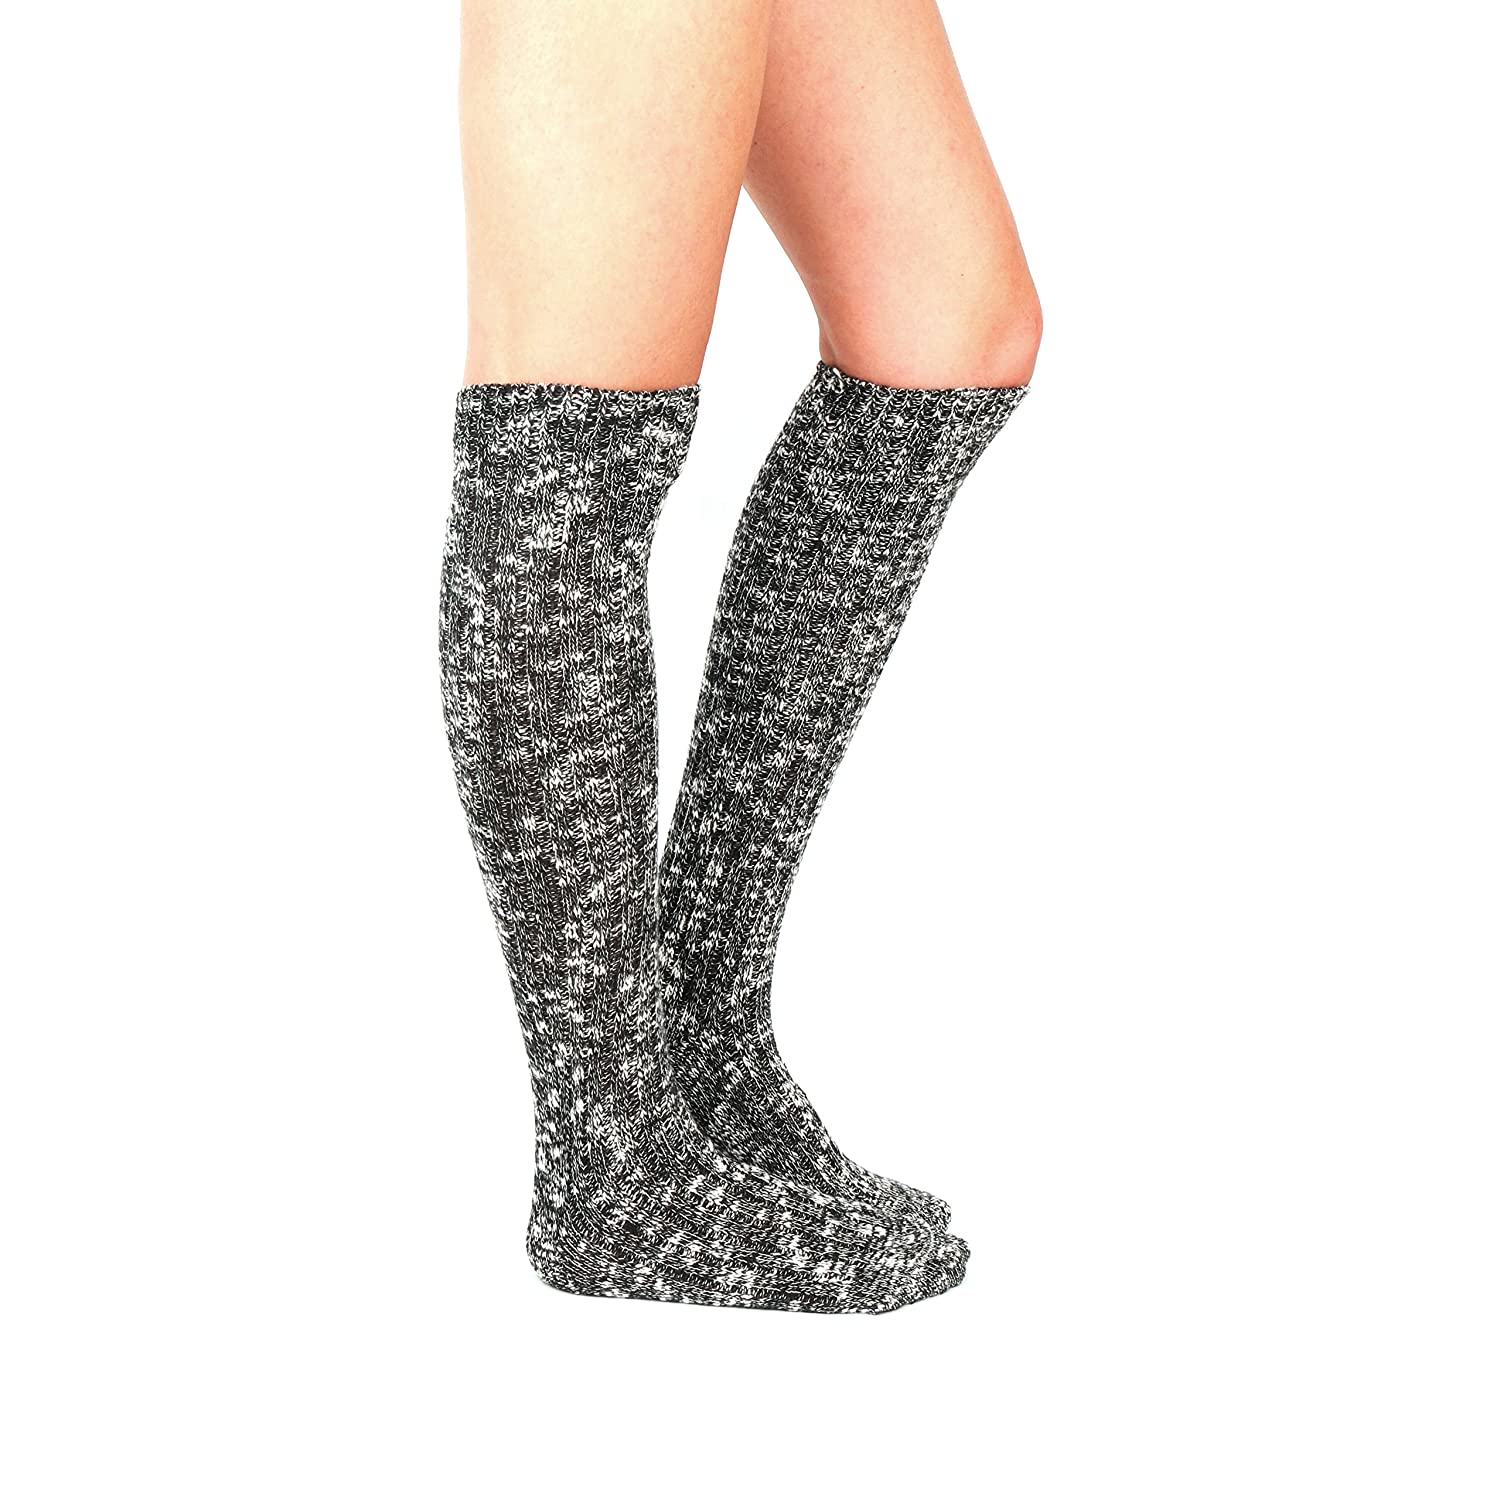 c27eb9f2bd218 Women's Knee High Wool Socks Soft Warm Thick Thermal Girl Winter Cushion  Crew Quarter (A-Black) at Amazon Women's Clothing store: